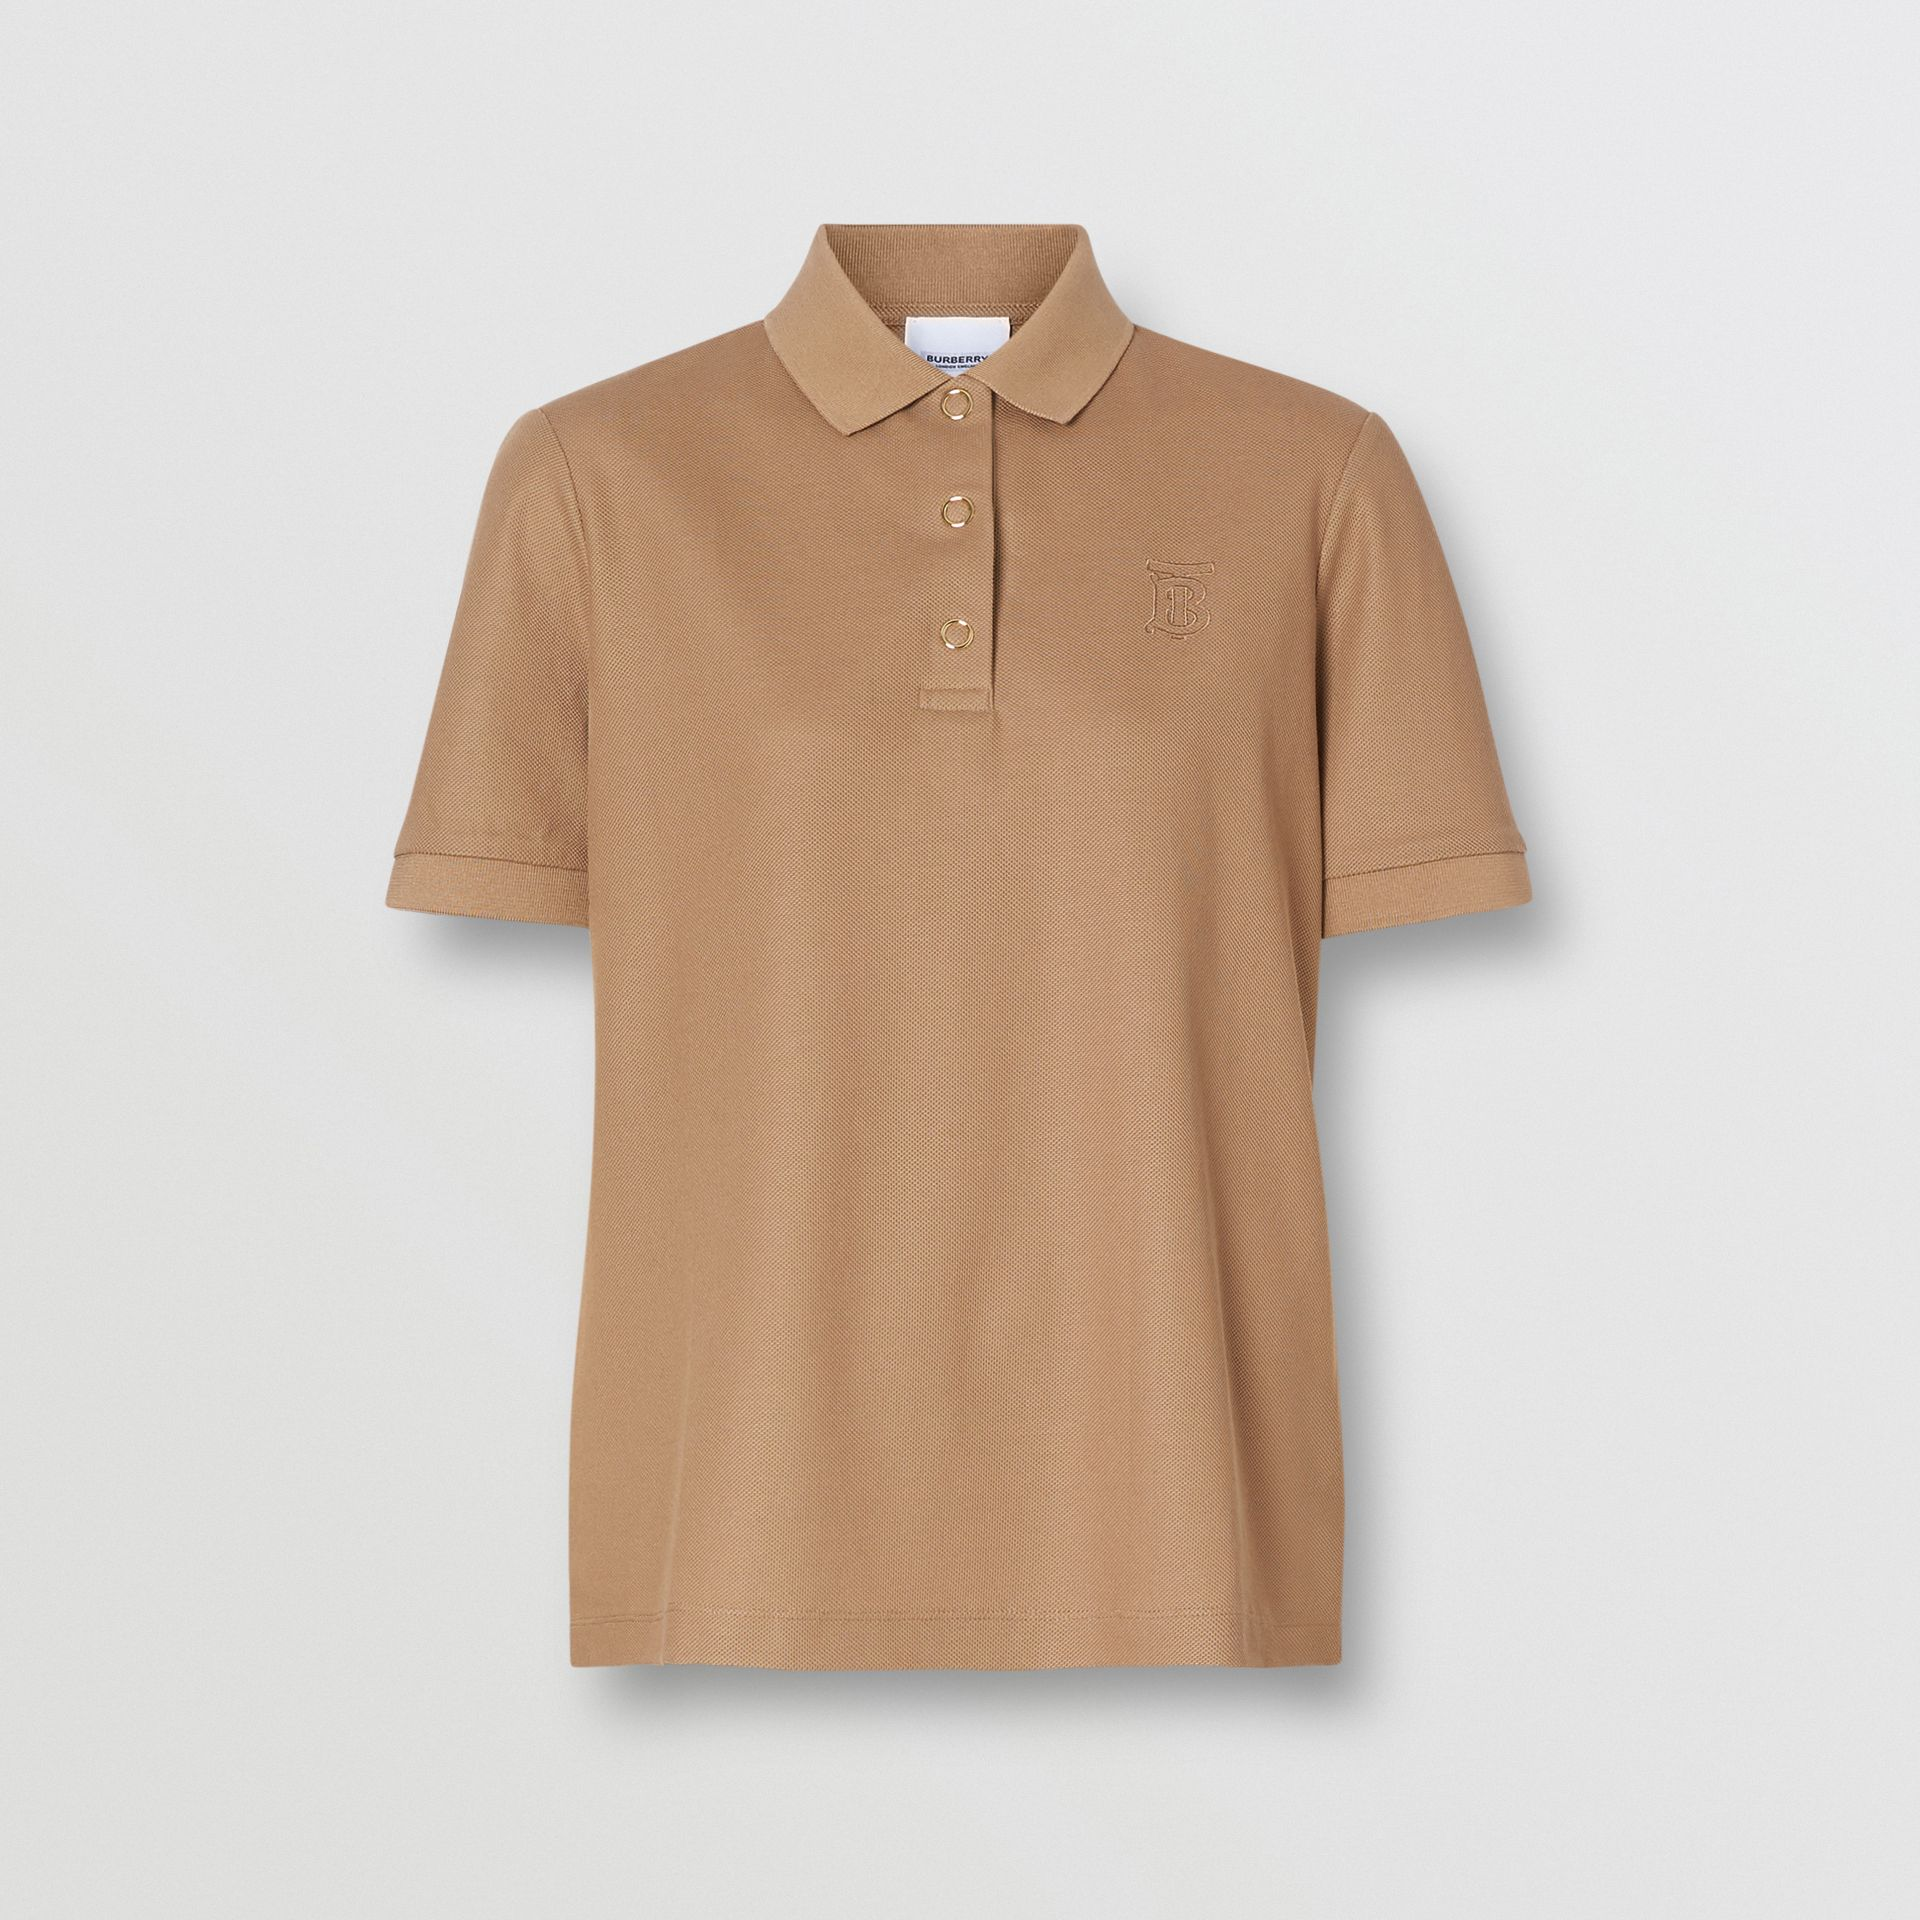 Monogram Motif Cotton Piqué Polo Shirt in Camel - Women | Burberry - gallery image 3